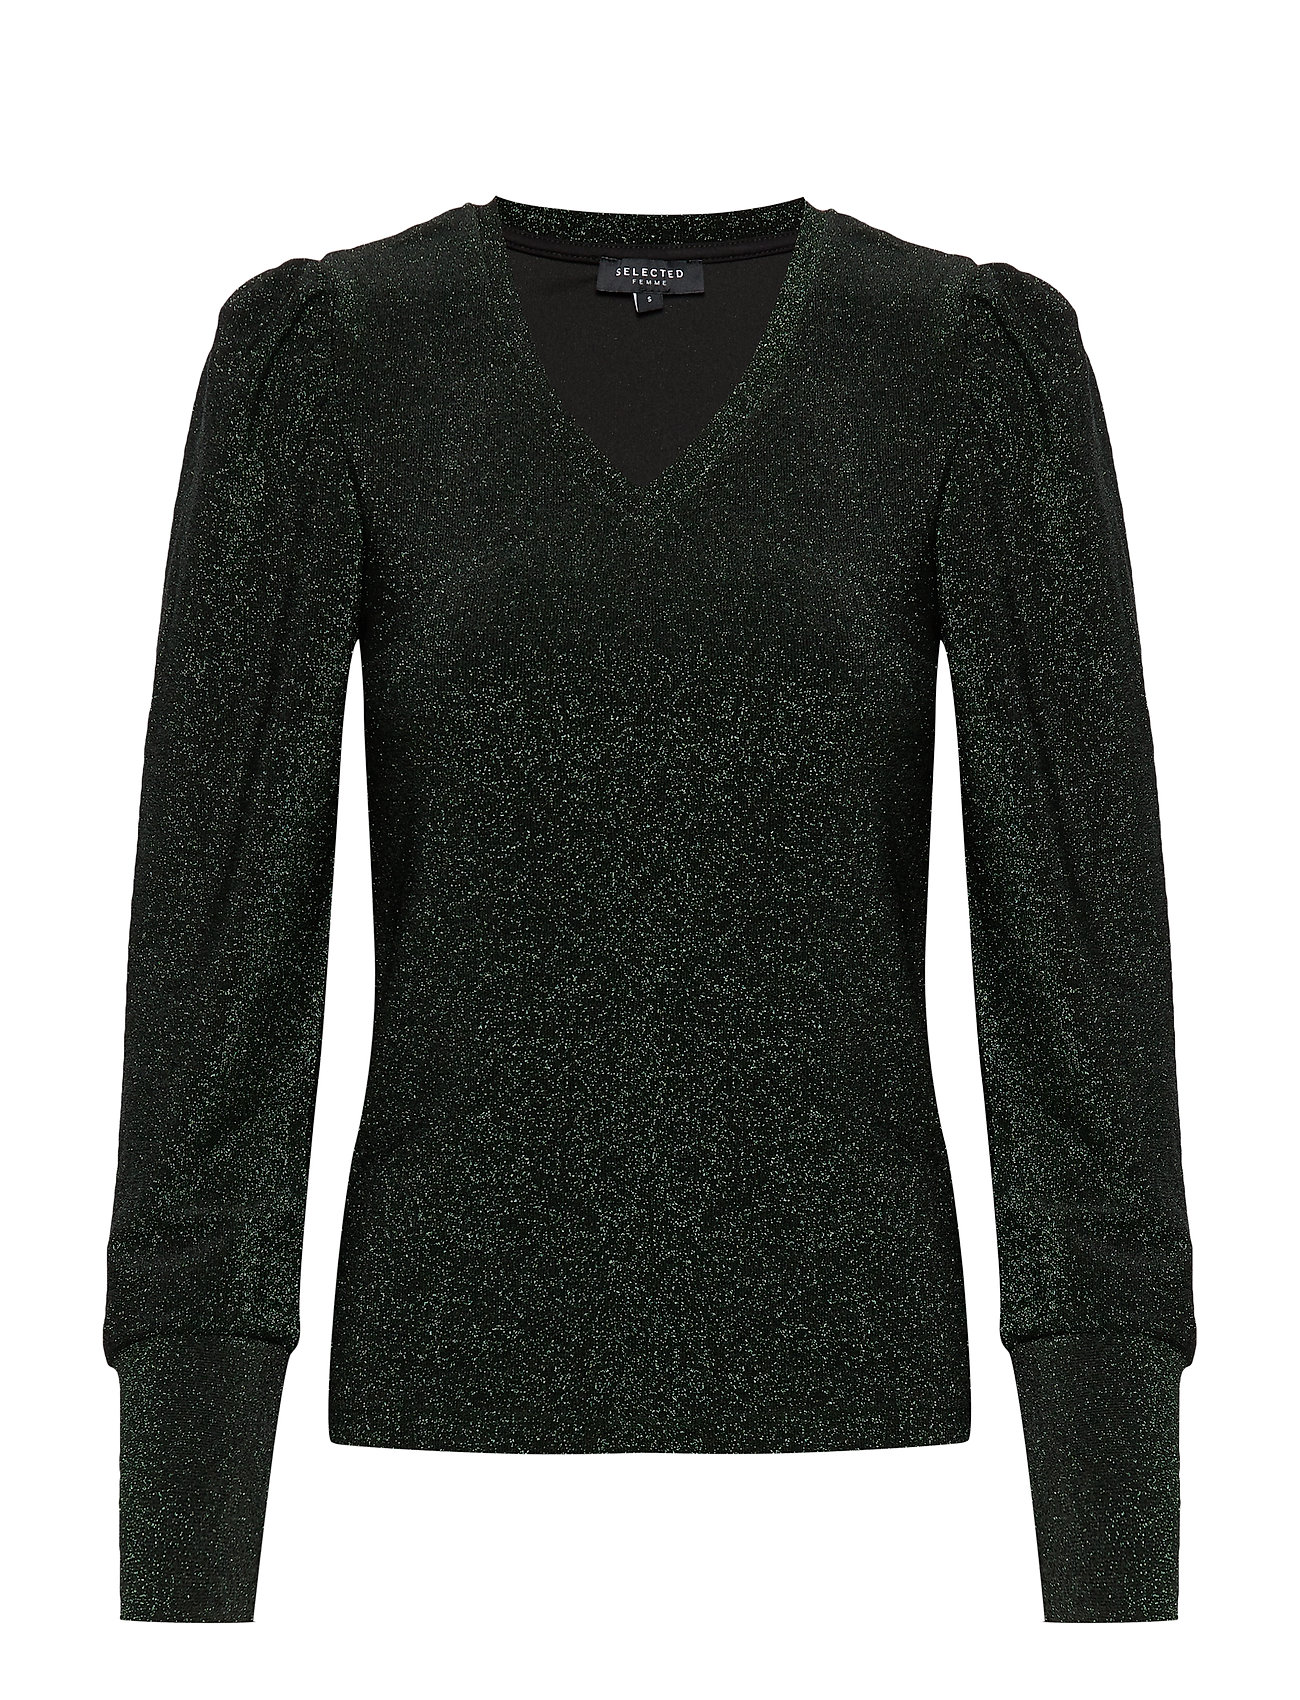 Selected Femme SLFCIA LS TOP B - BLACK